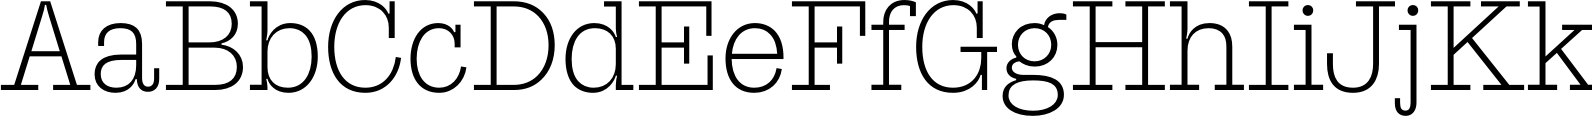 Suomi Slab Serif Light